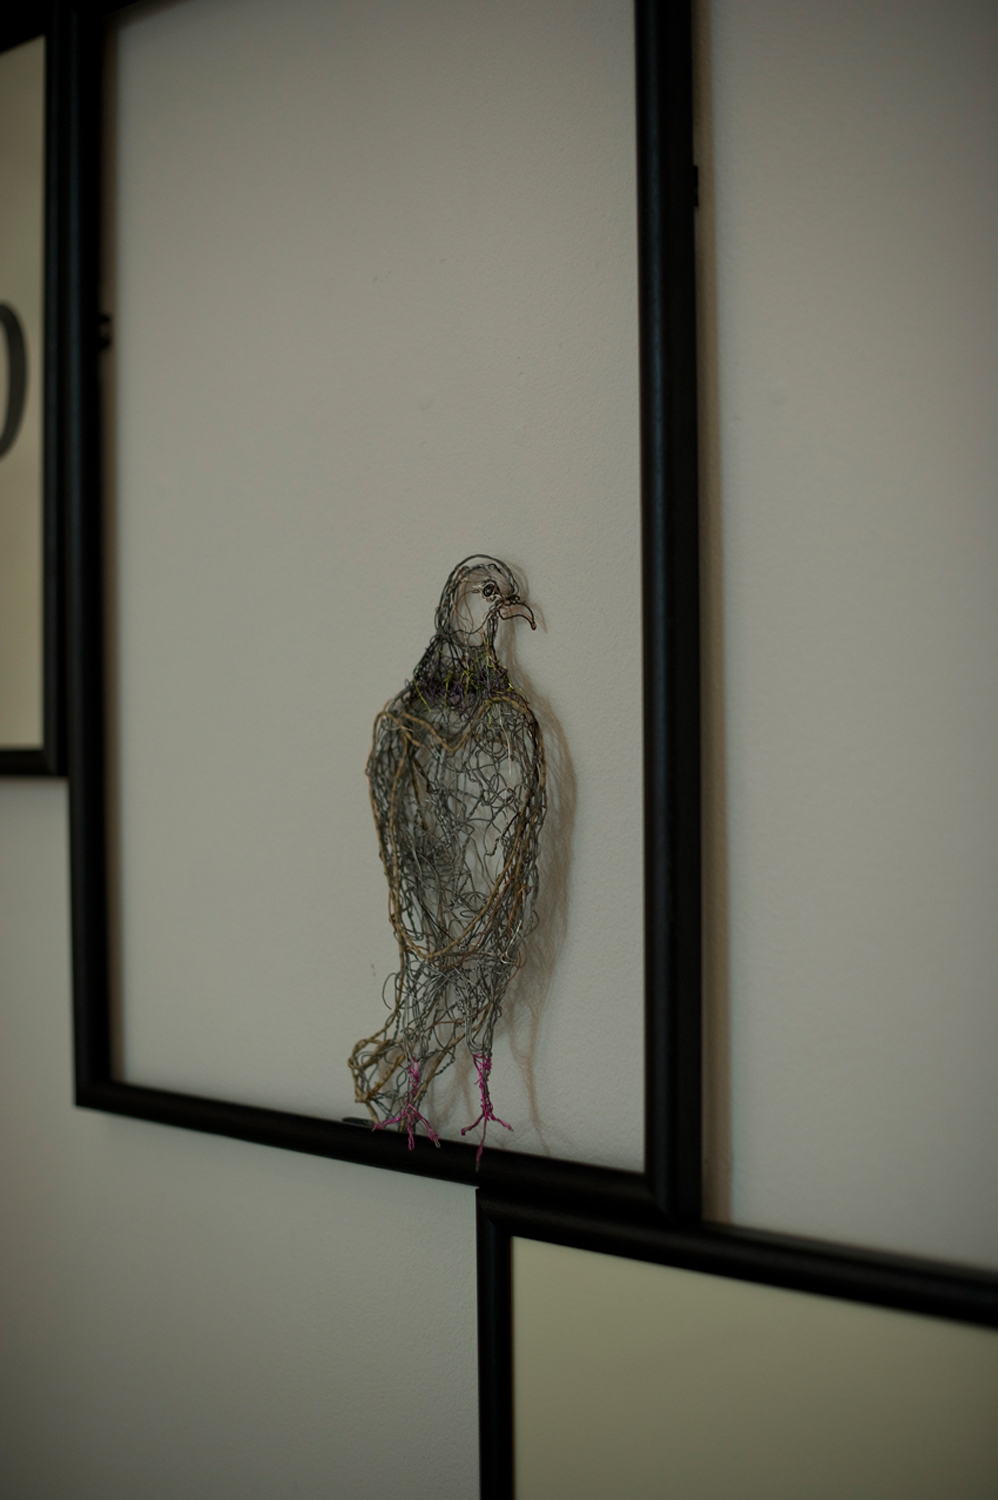 The Feathered Aviator Exhibition New Brewery Arts Cirencester July 2014